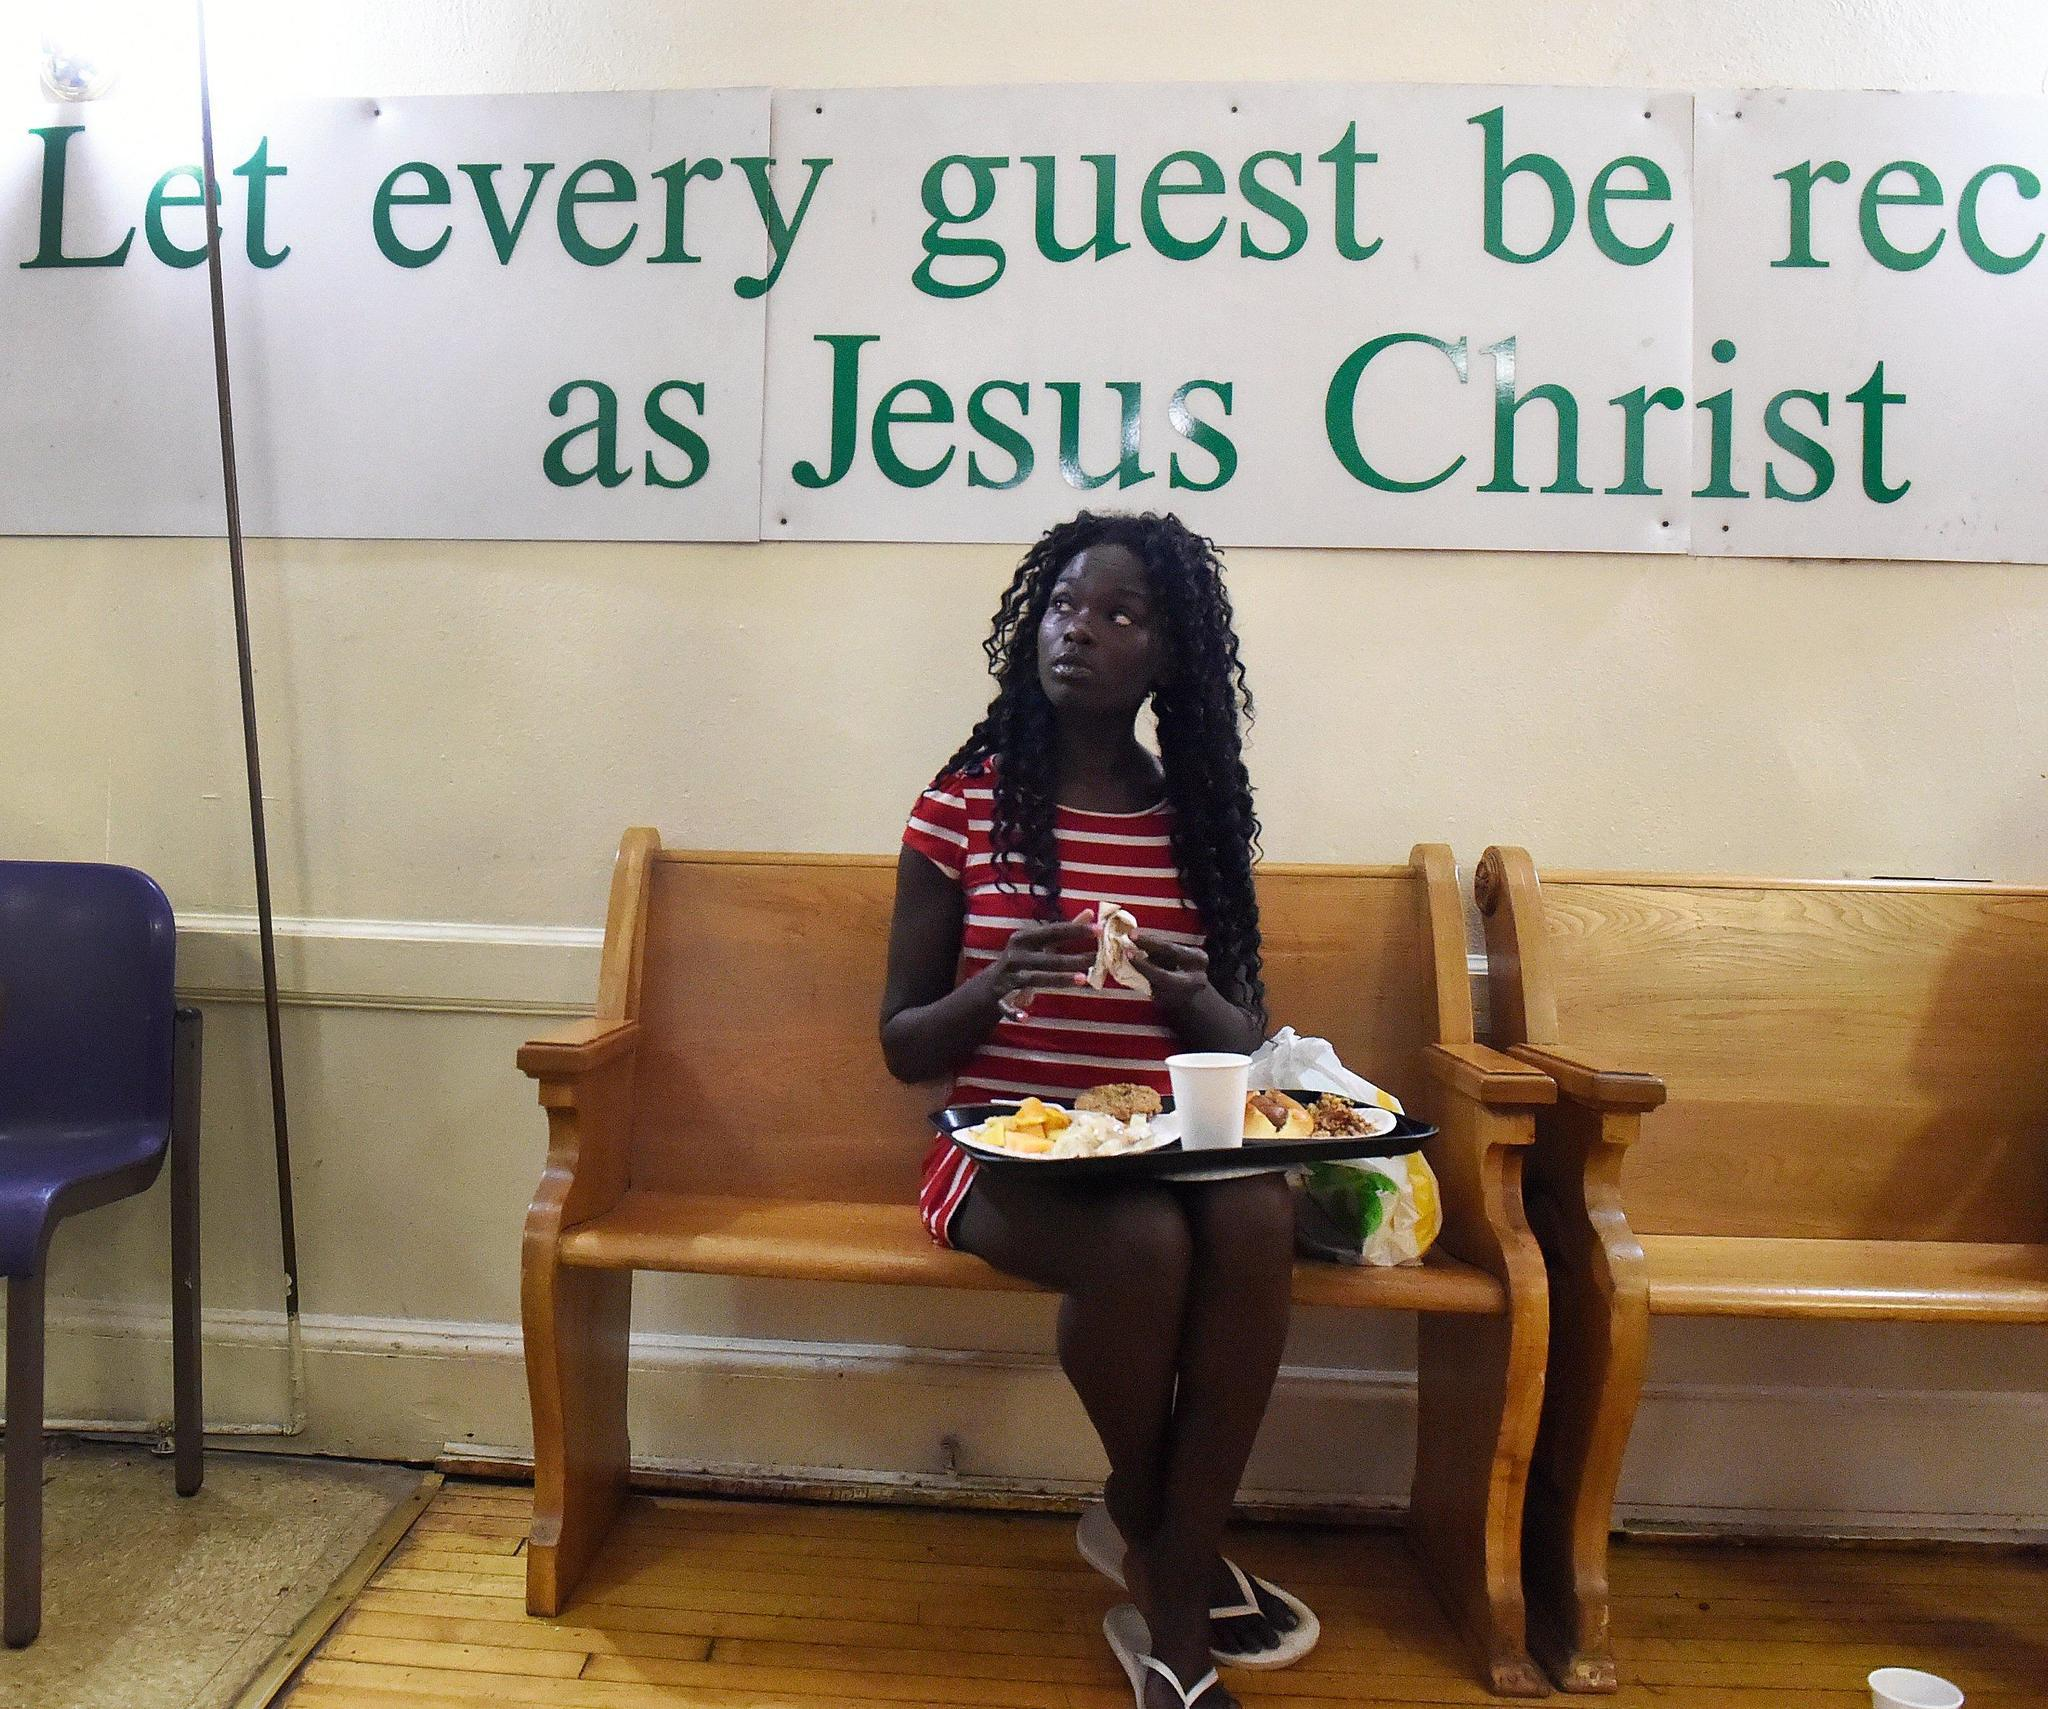 Soup Kitchen Volunteer Ct: Church Consolidations Could Impact Soup Kitchens, Other